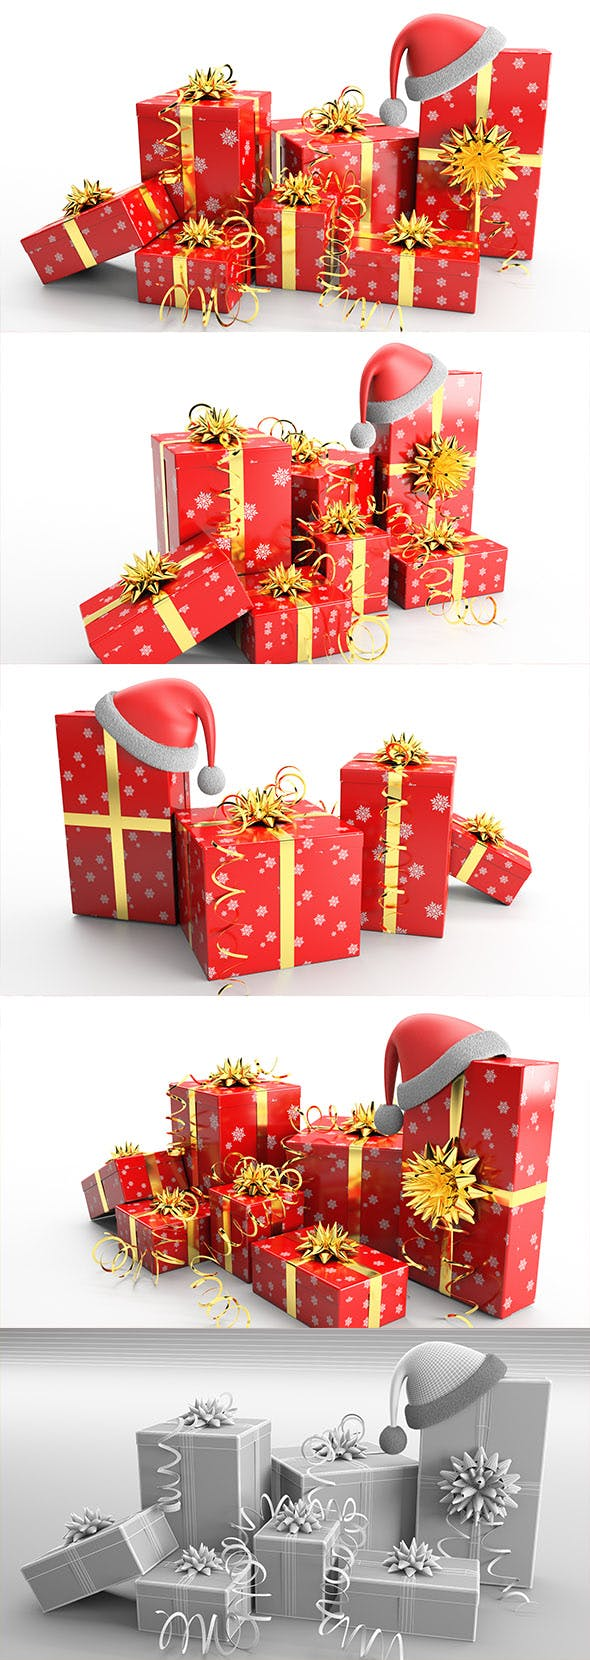 New Year Presents and Gift Boxes v1 - 3DOcean Item for Sale